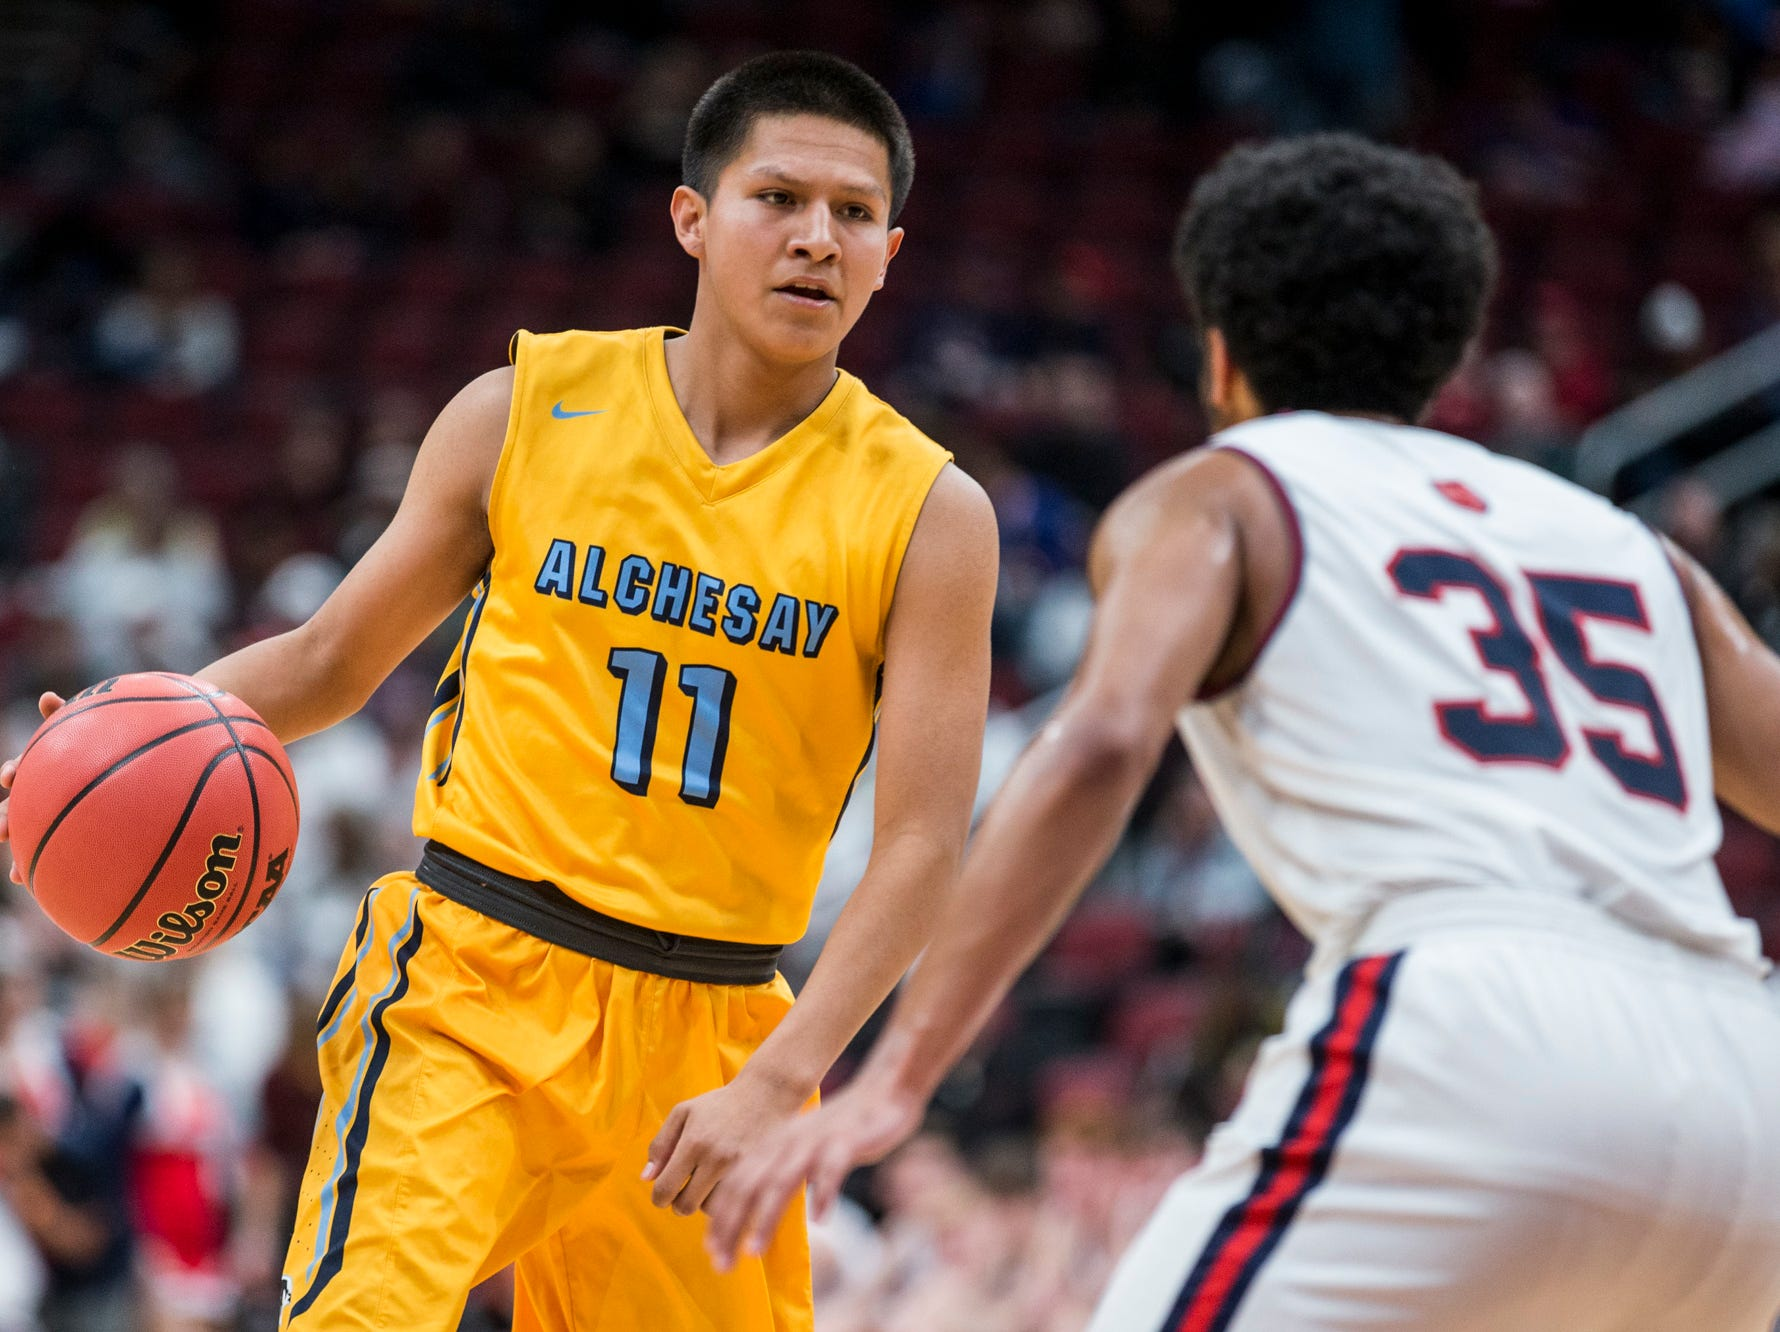 Alchesay's Shayne Stover sets up on offense against Scottsdale Christian during the 2A boys basketball championship on Saturday, Feb. 23, 2019, at Gila River Arena in Glendale, Ariz.